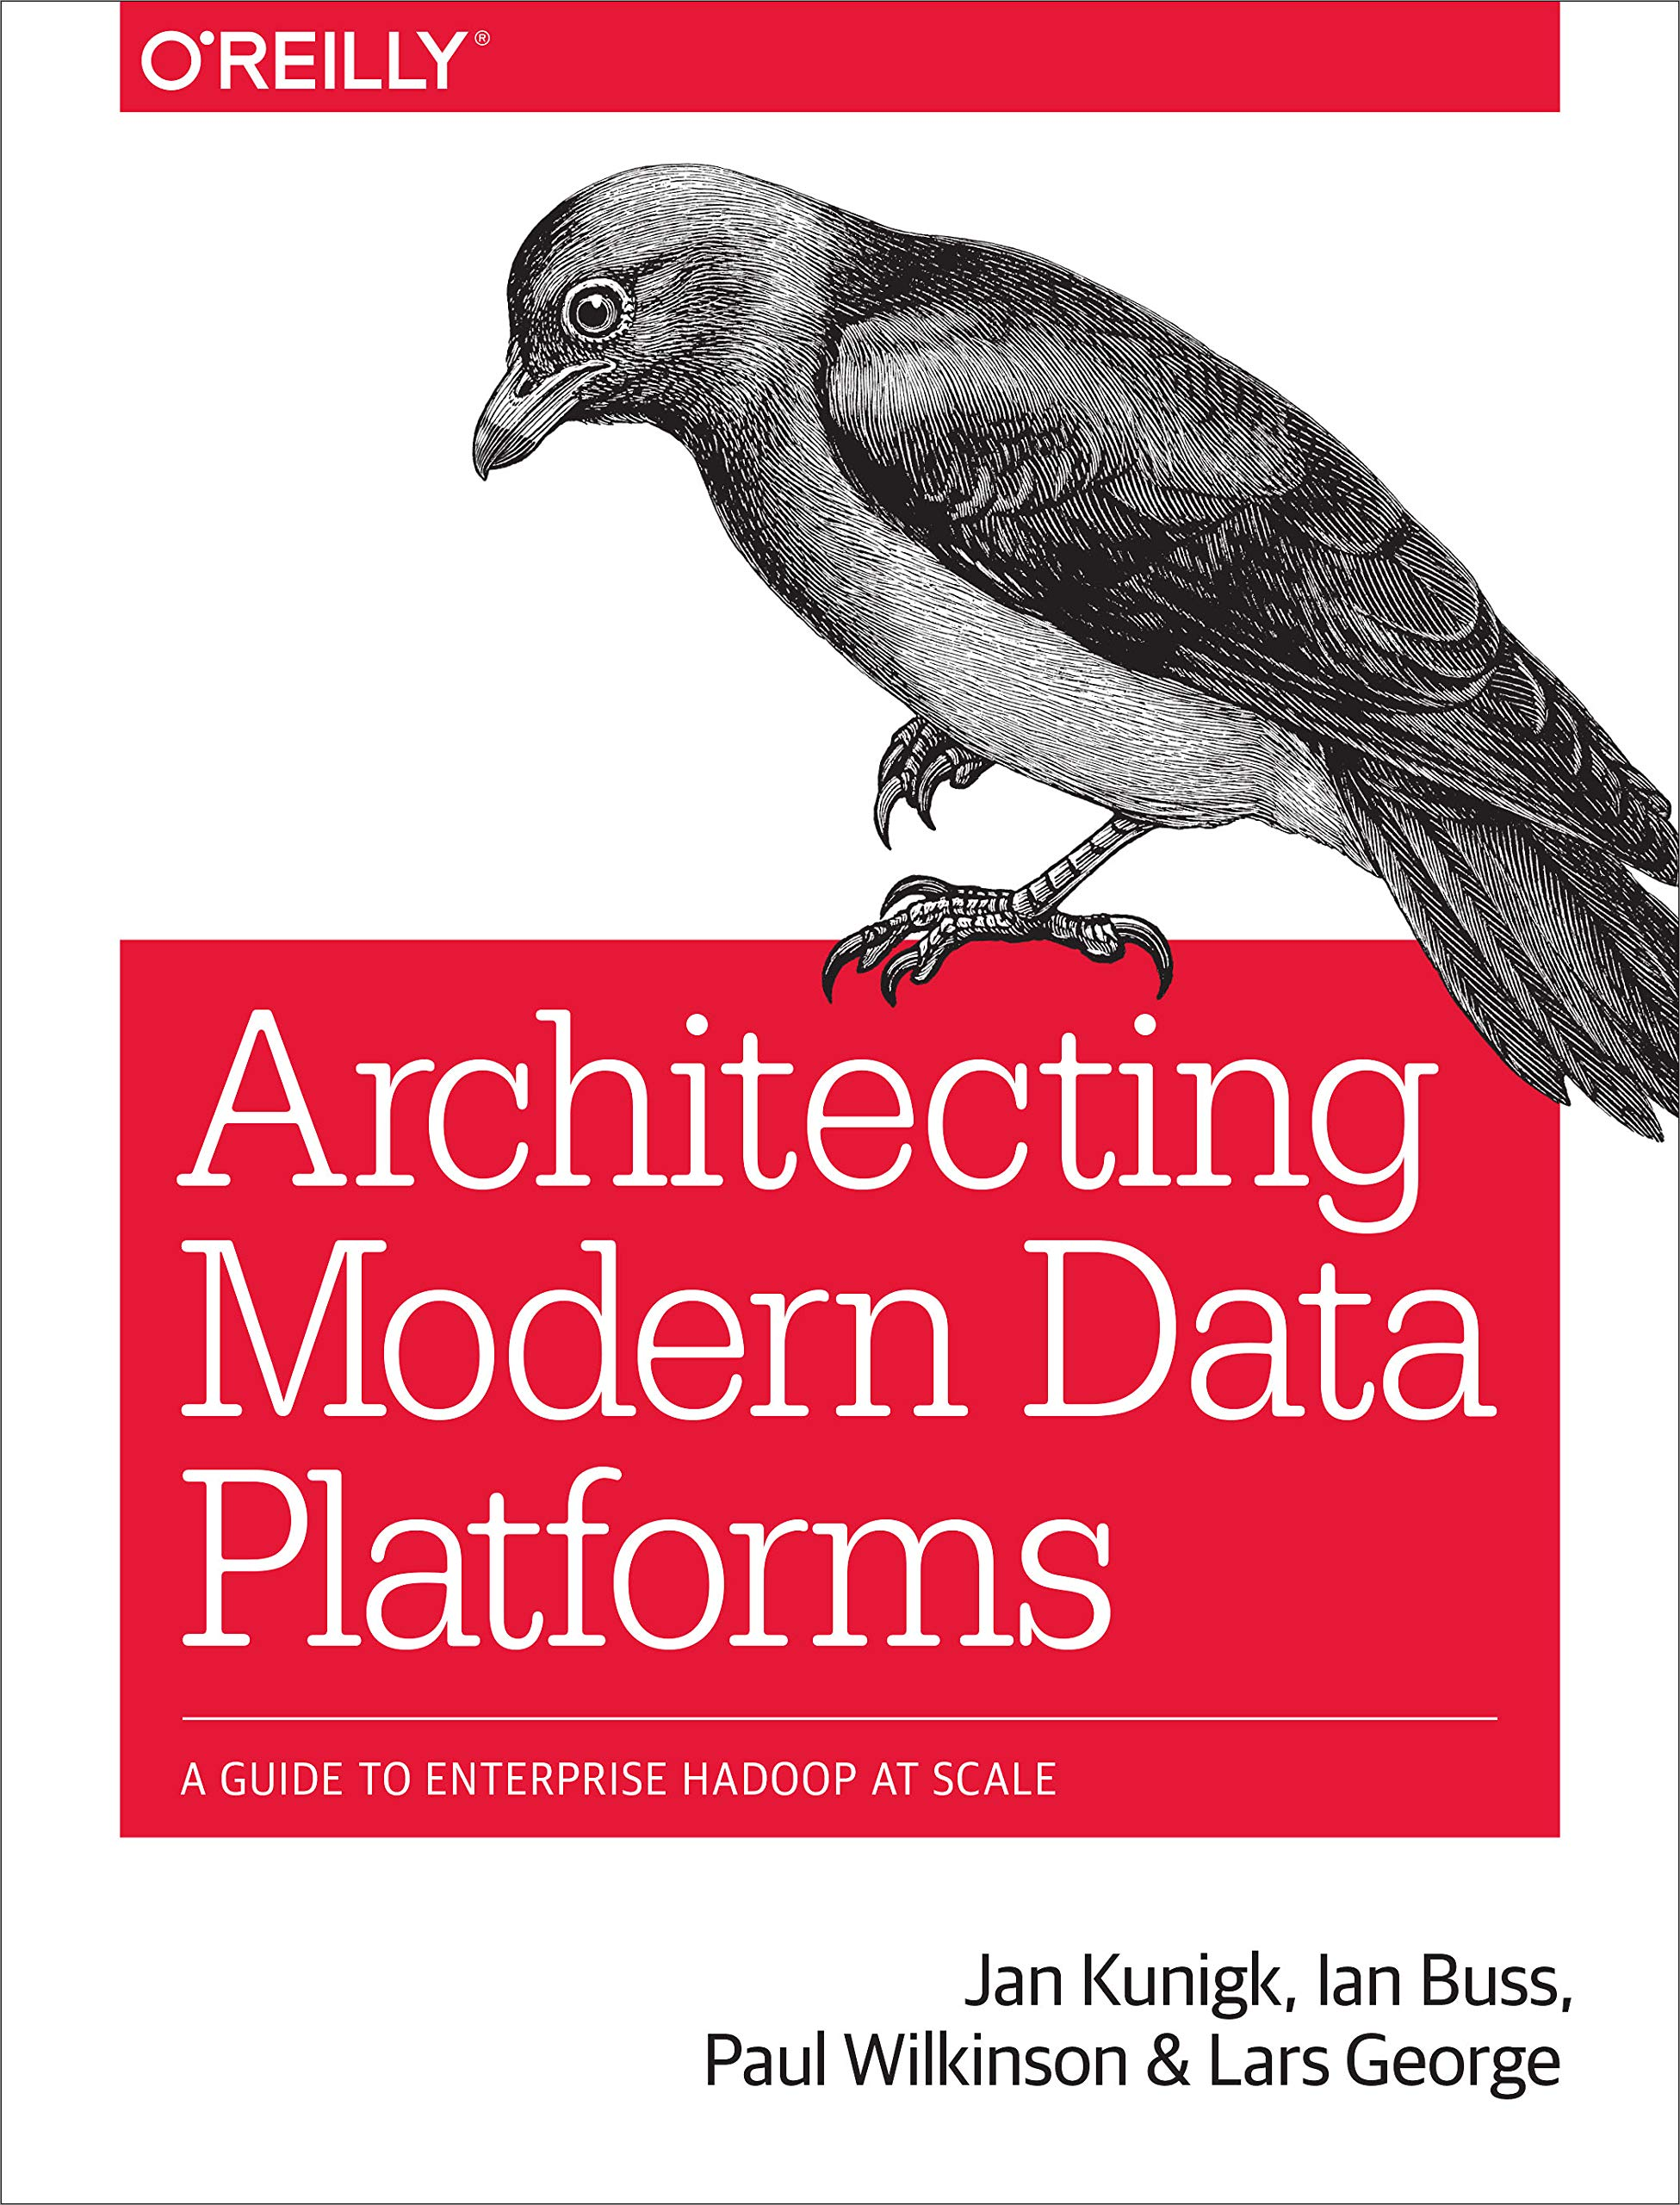 Architecting Modern Data Platforms